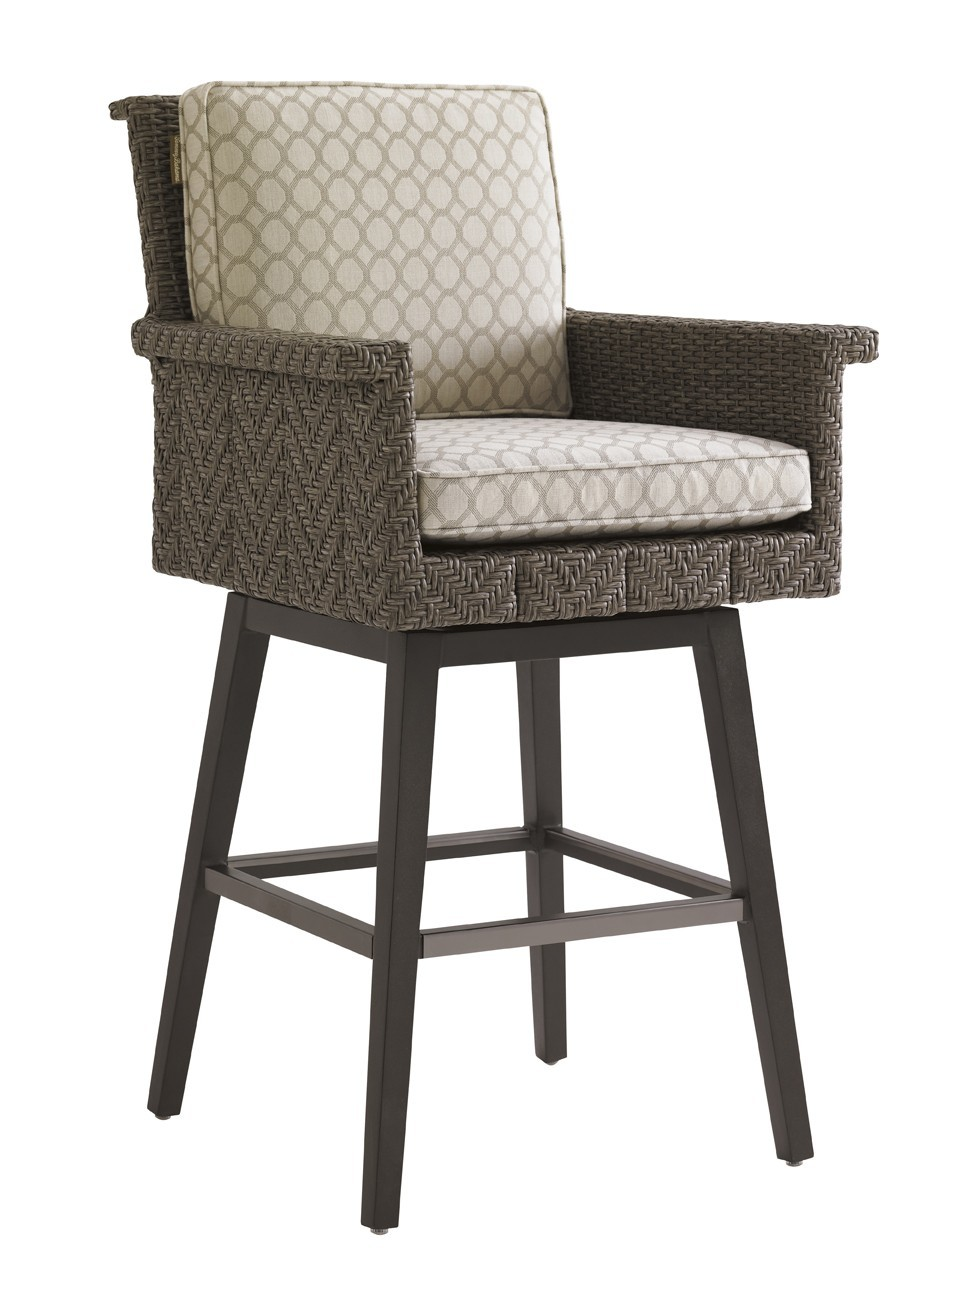 Blue Olive Swivel Bar Stool Frame  Hausers Patio